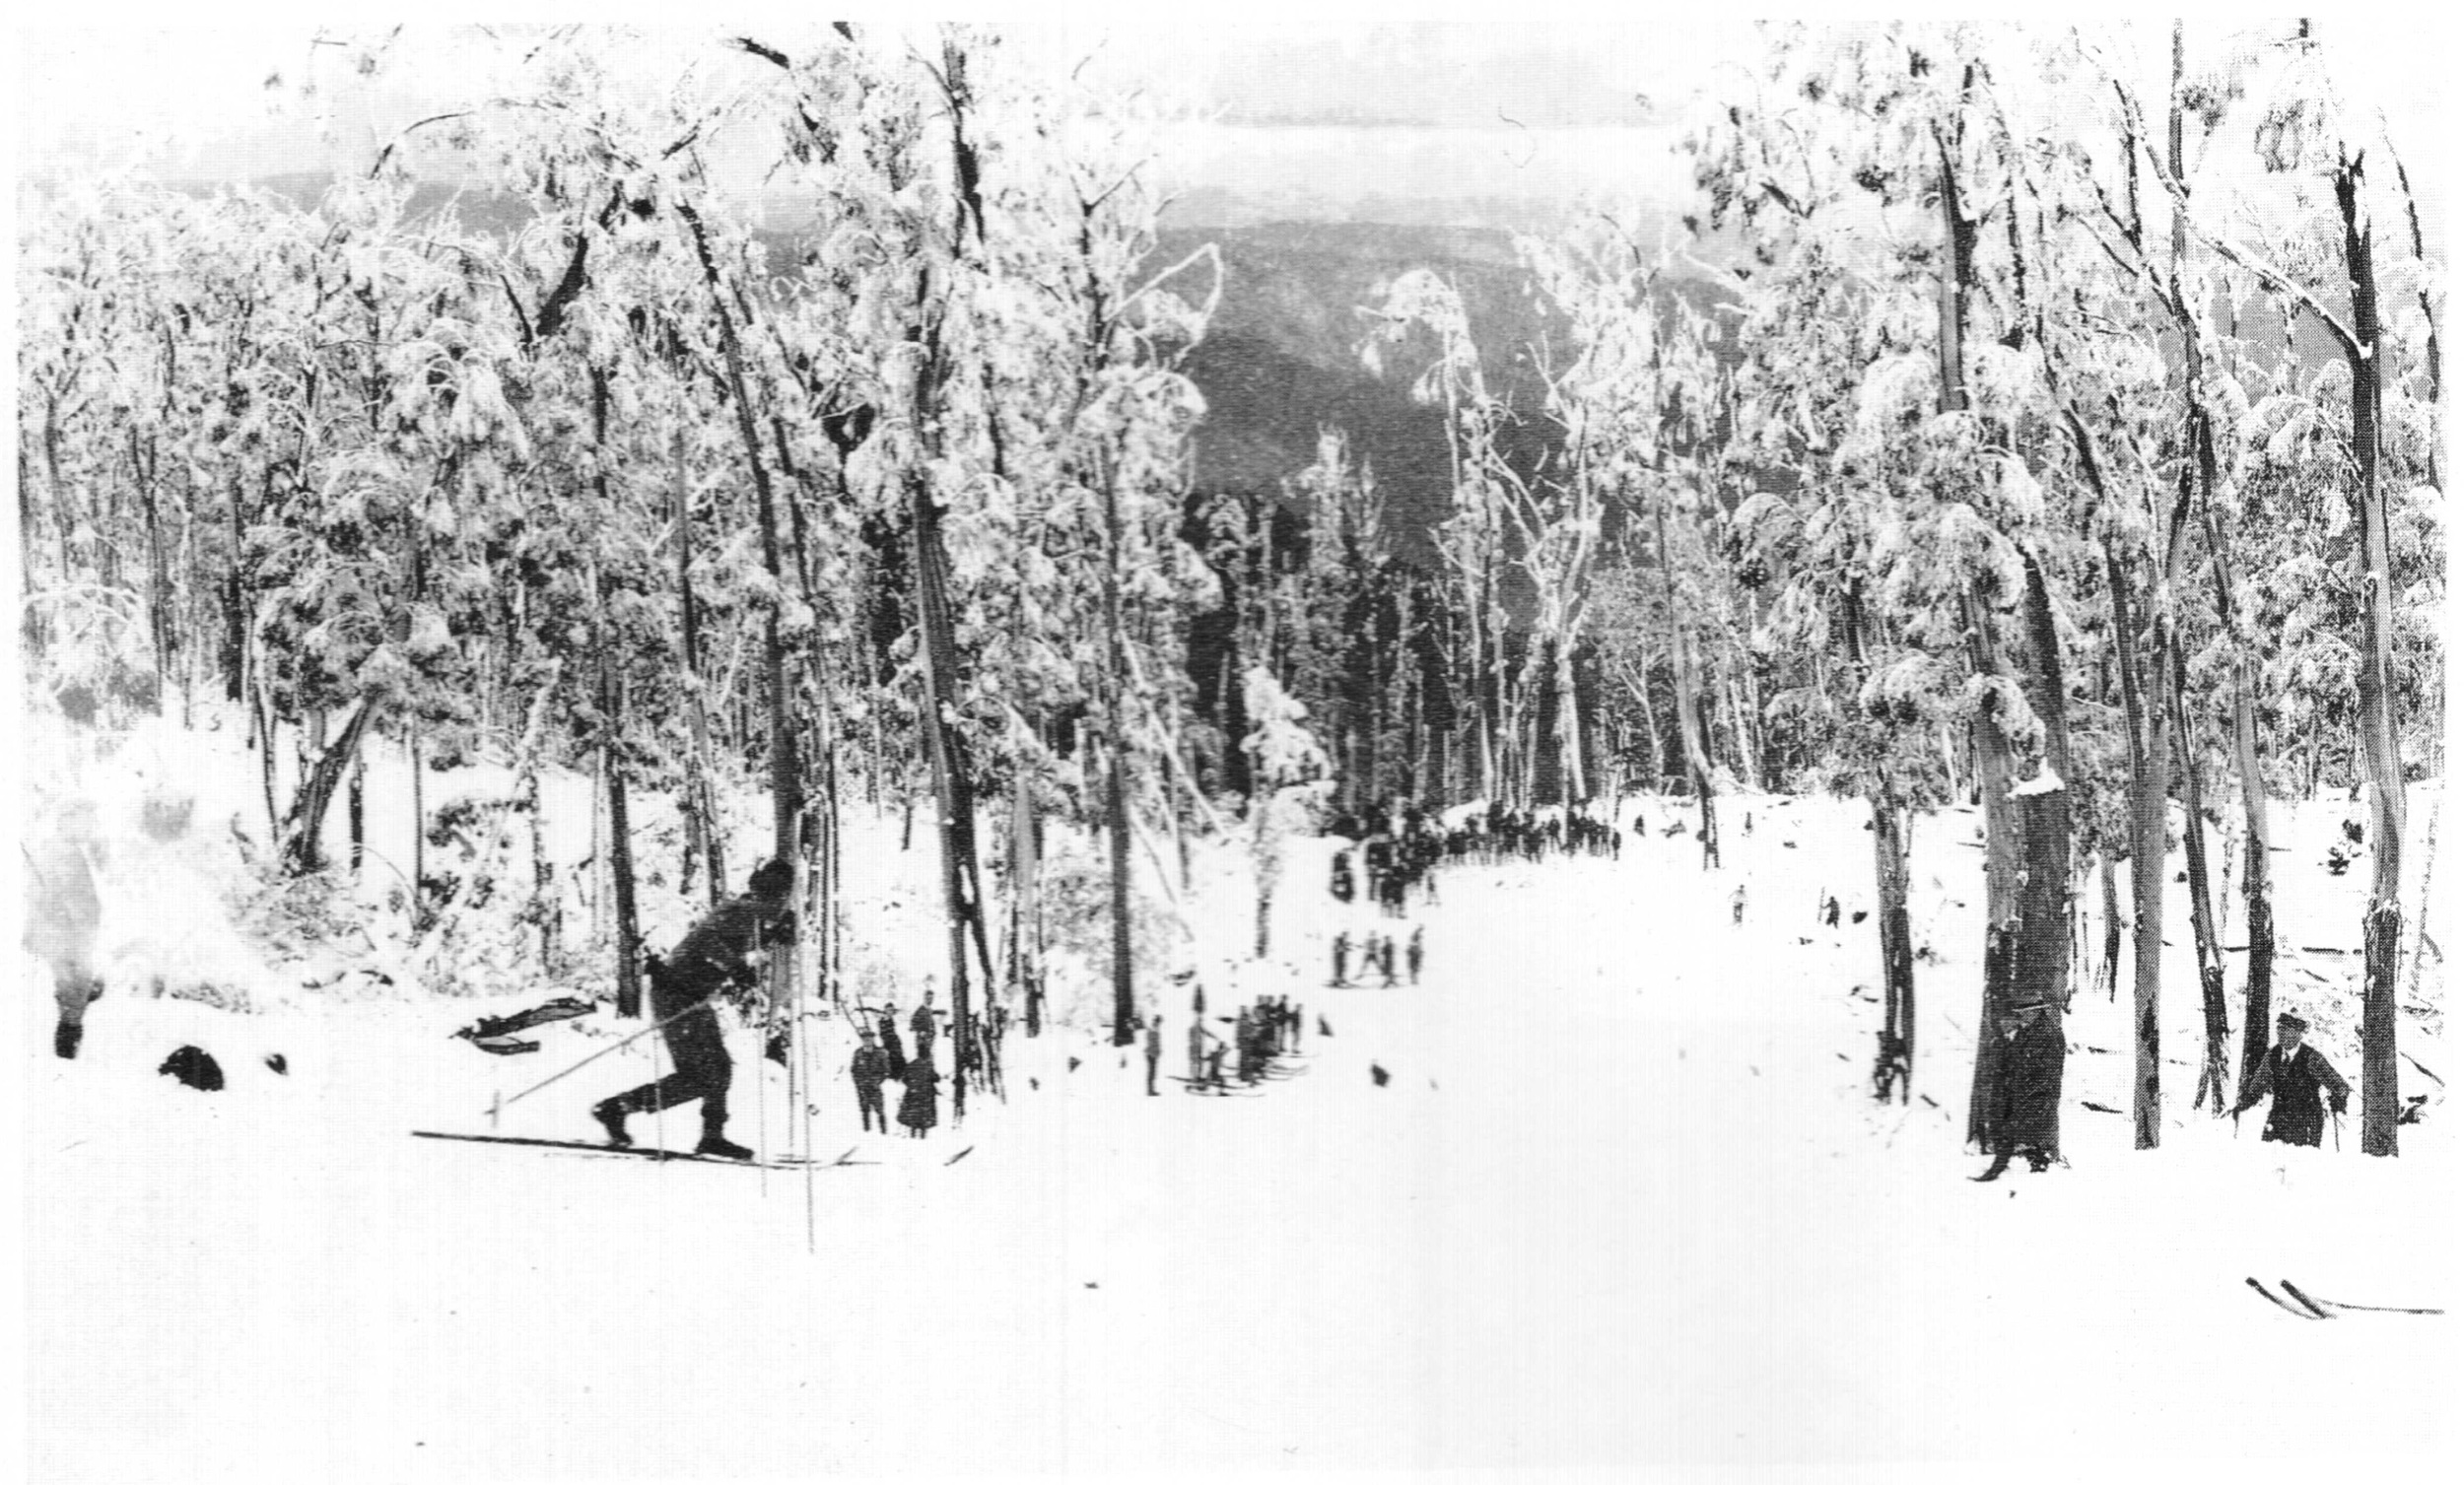 Looking down the Ski Slide (later widened, extended and renamed the Main Run) in 1929. Photo probably by Monty Kent Hughes.